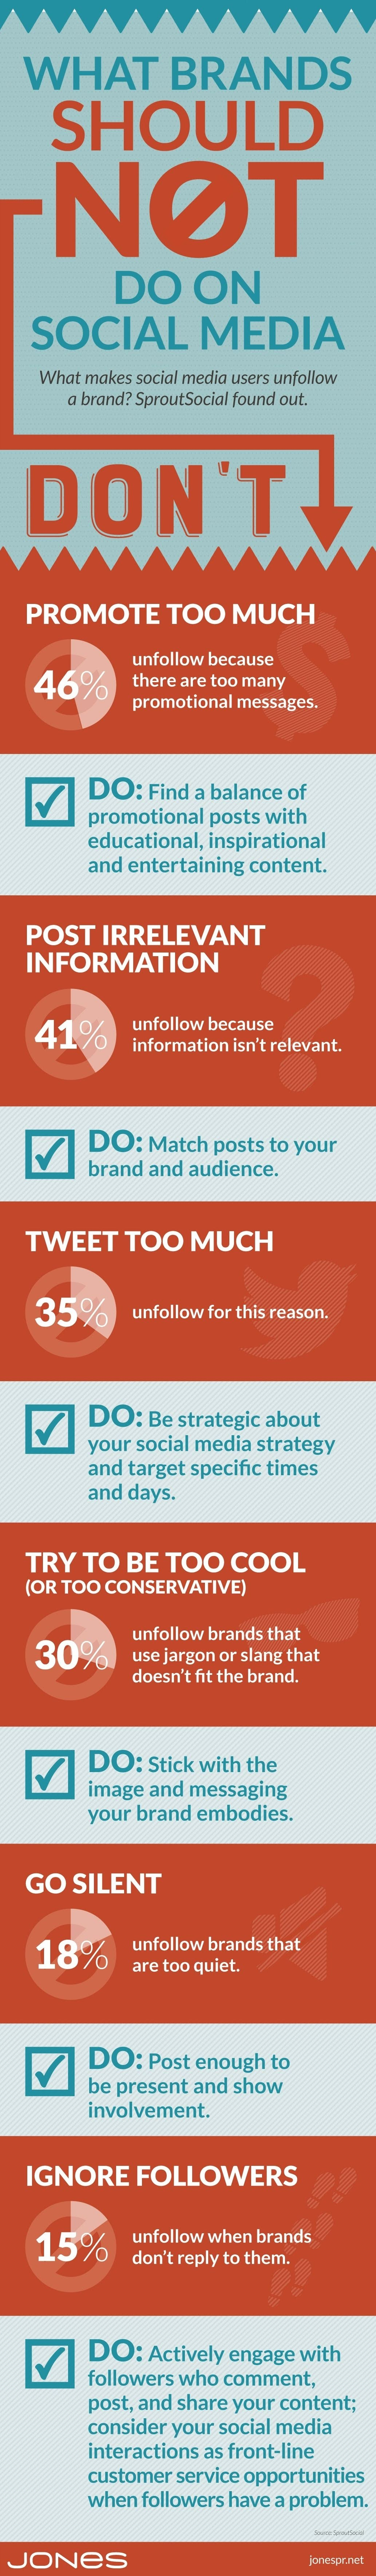 What Brands Shouldn't Do on Social Media [infographic]